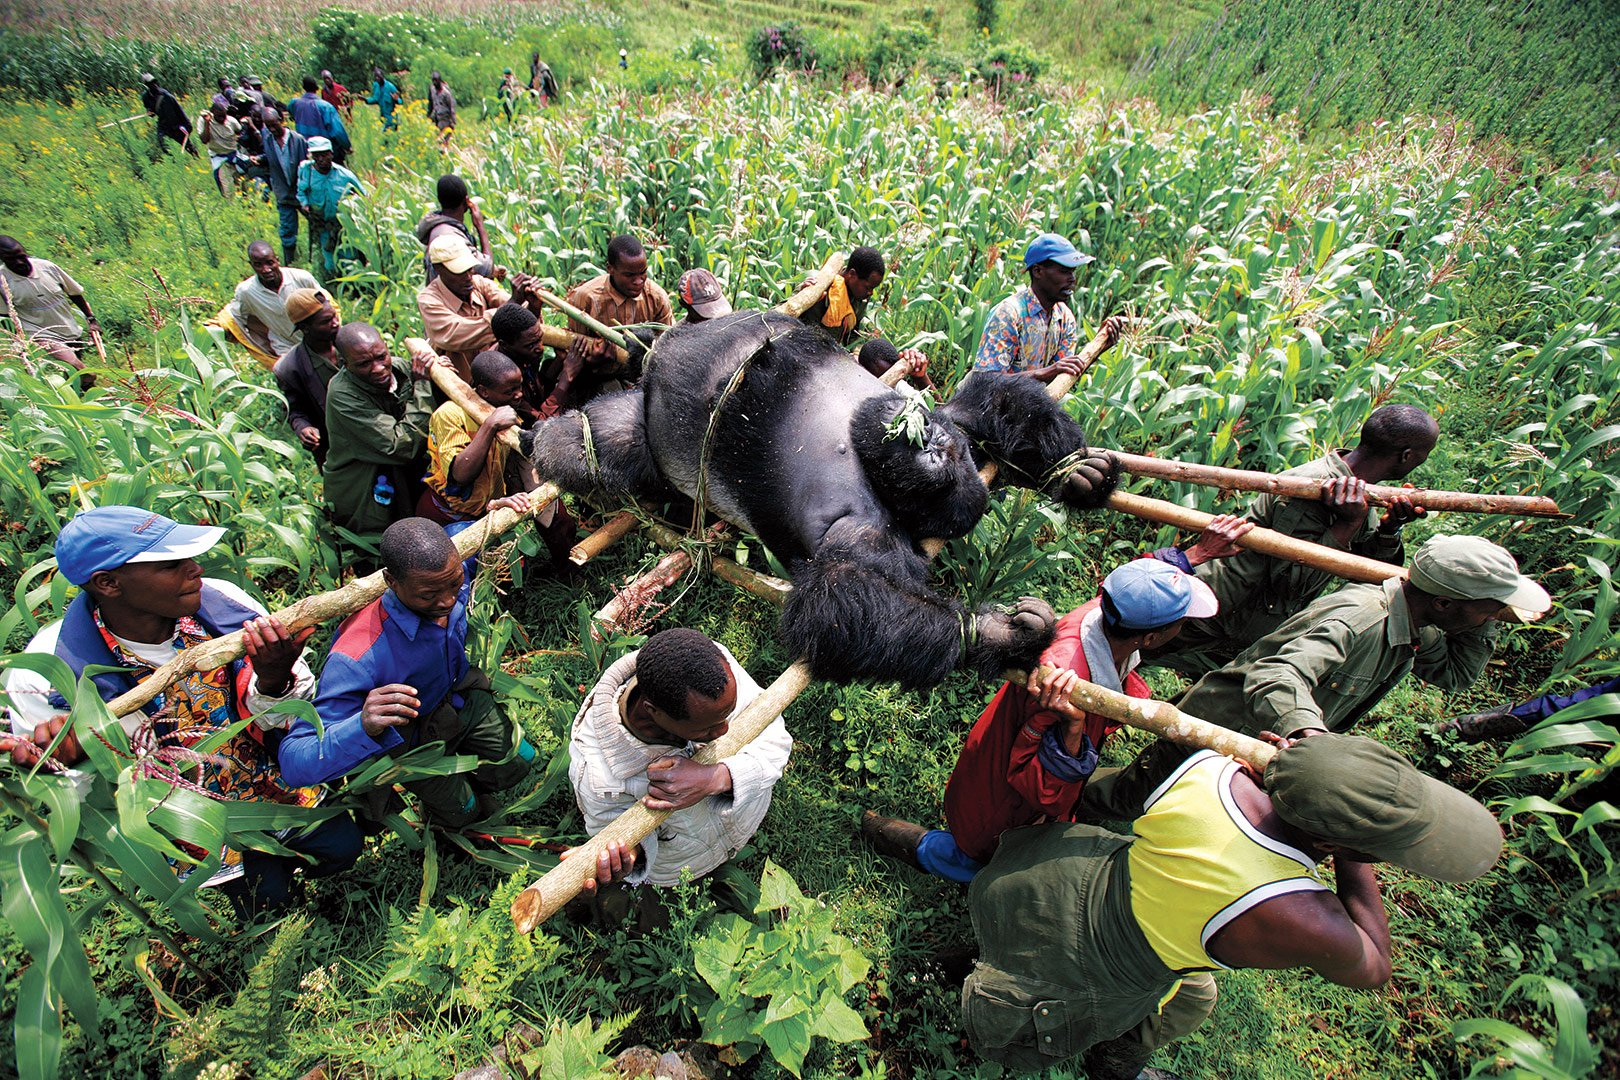 Rangers and villagers holding a funeral procession for a poached gorilla (by Brent Stirnton)